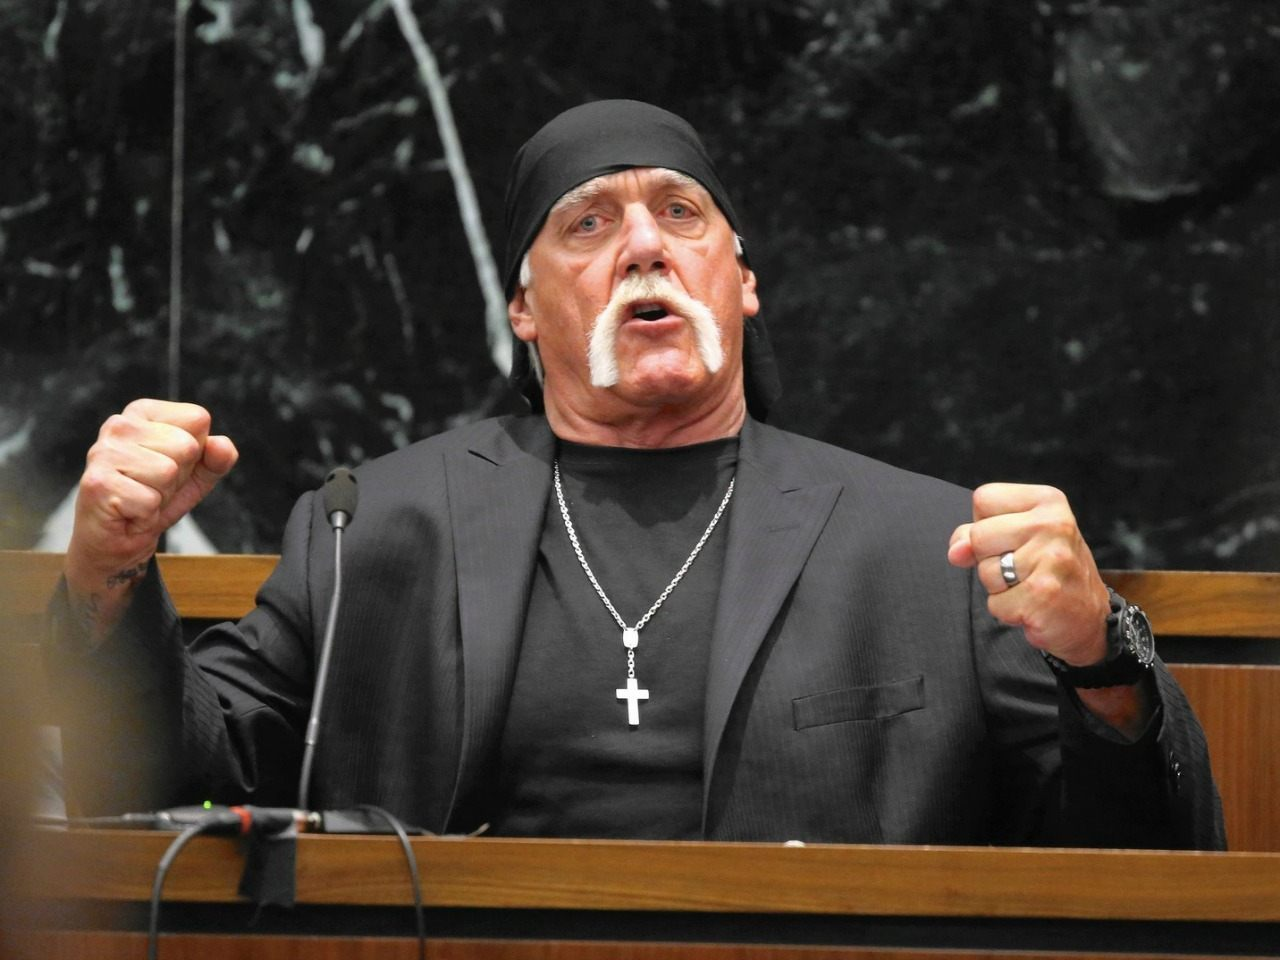 Hulk Hogan, whose given name is Terry Bollea, testifies in court on Tuesday, March 8, 2016, during his trial against Gawker Media, in St Petersburg, Fla. Hogan and his attorneys are suing Gawker for $100 million, saying that his privacy was violated, and he suffered emotional distress after Gawker posted a sex tape filmed of Hogan and his then-best friend's wife. (John Pendygraft/Tampa Bay Times via AP, Pool)